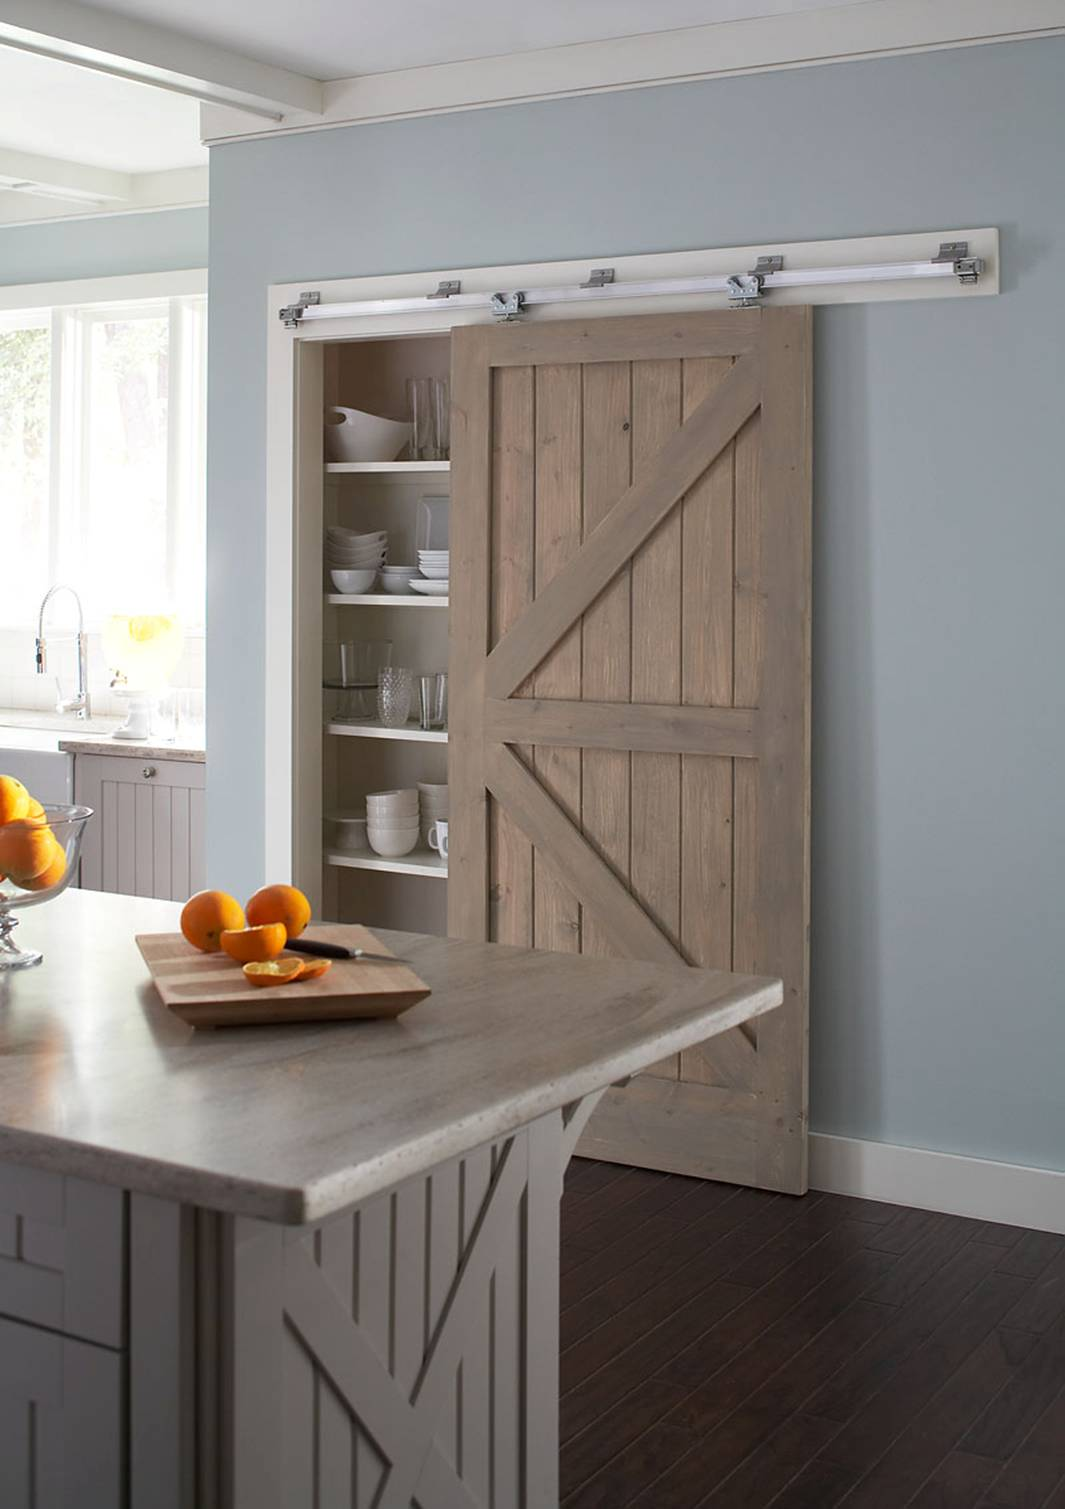 Another Slightly More Affordable Sliding Door System From HomCom, The  HomCom 6u0027 Interior Sliding Barn Door Kit. Available In Several Styles.